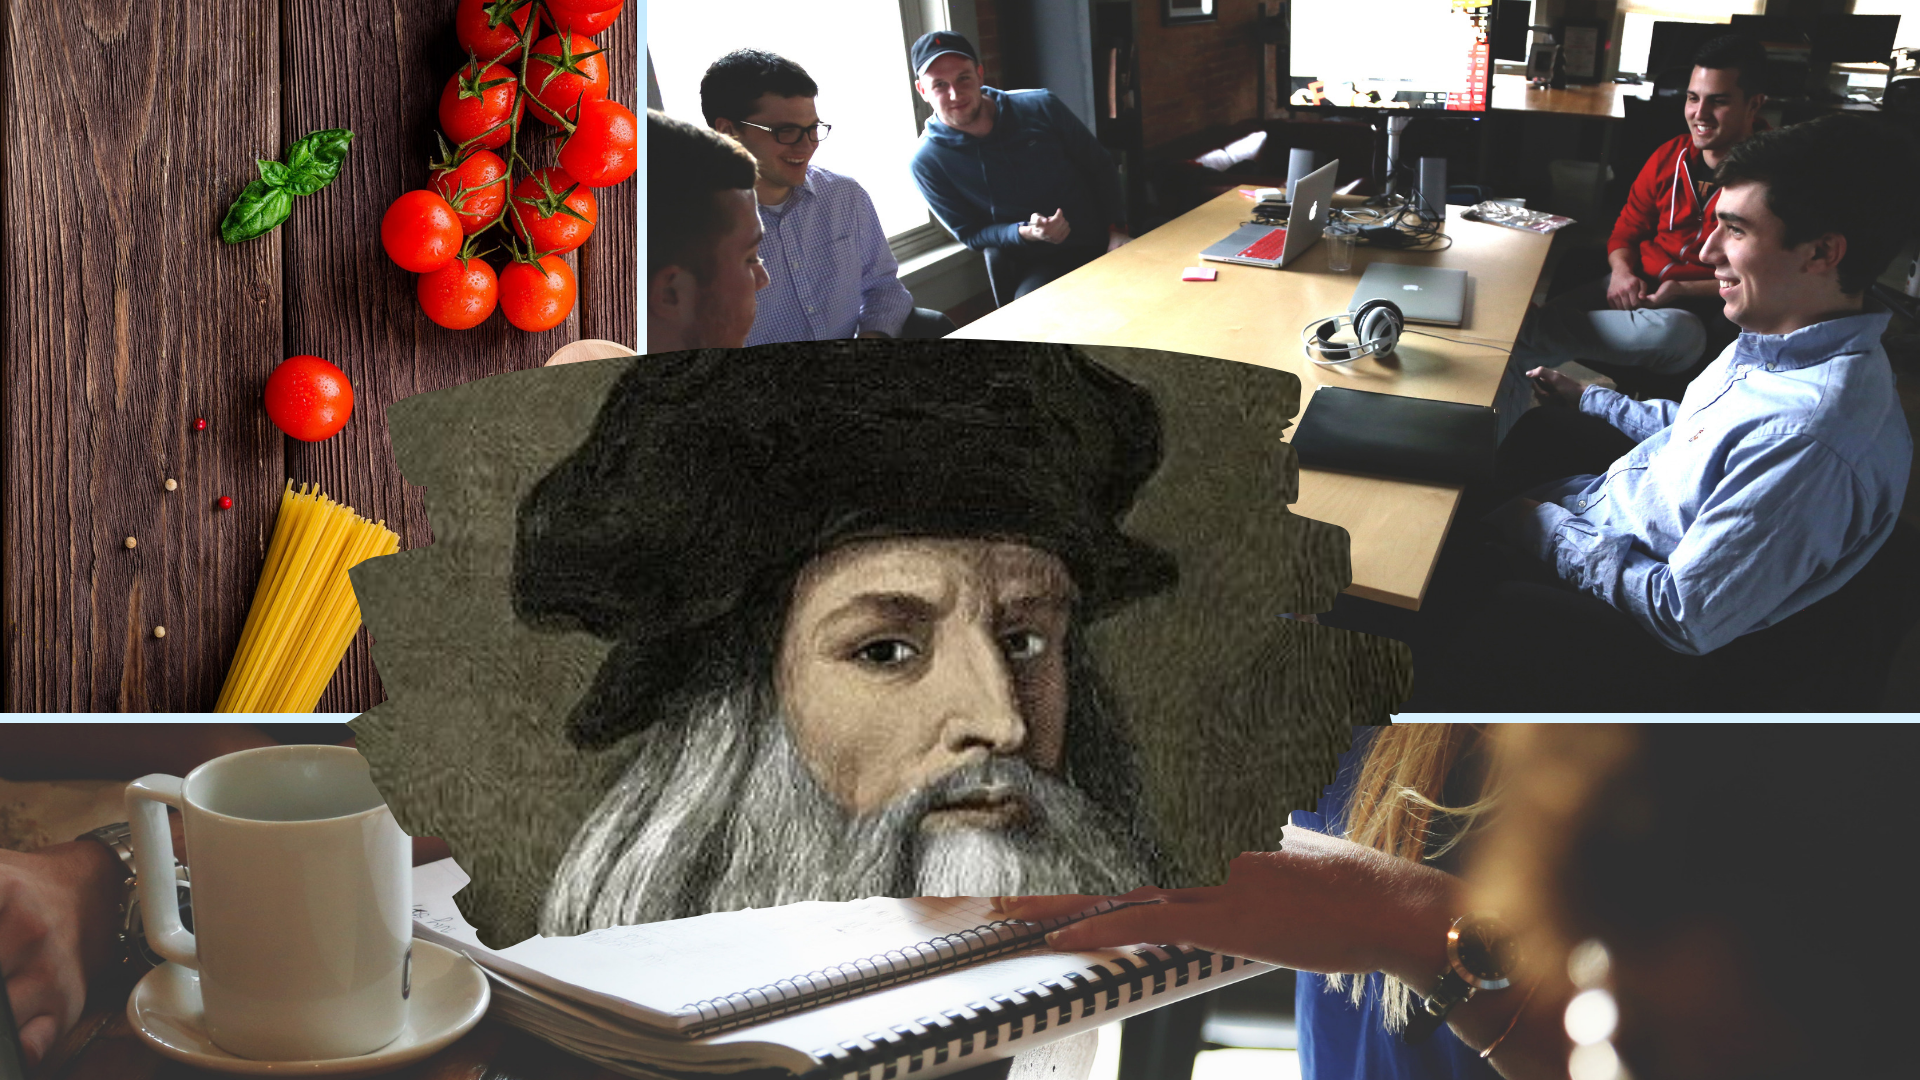 THE ITALIAN 2019: LEONARDO DA VINCI AND OPEN INNOVATION IN FOOD, COINCIDENCE?